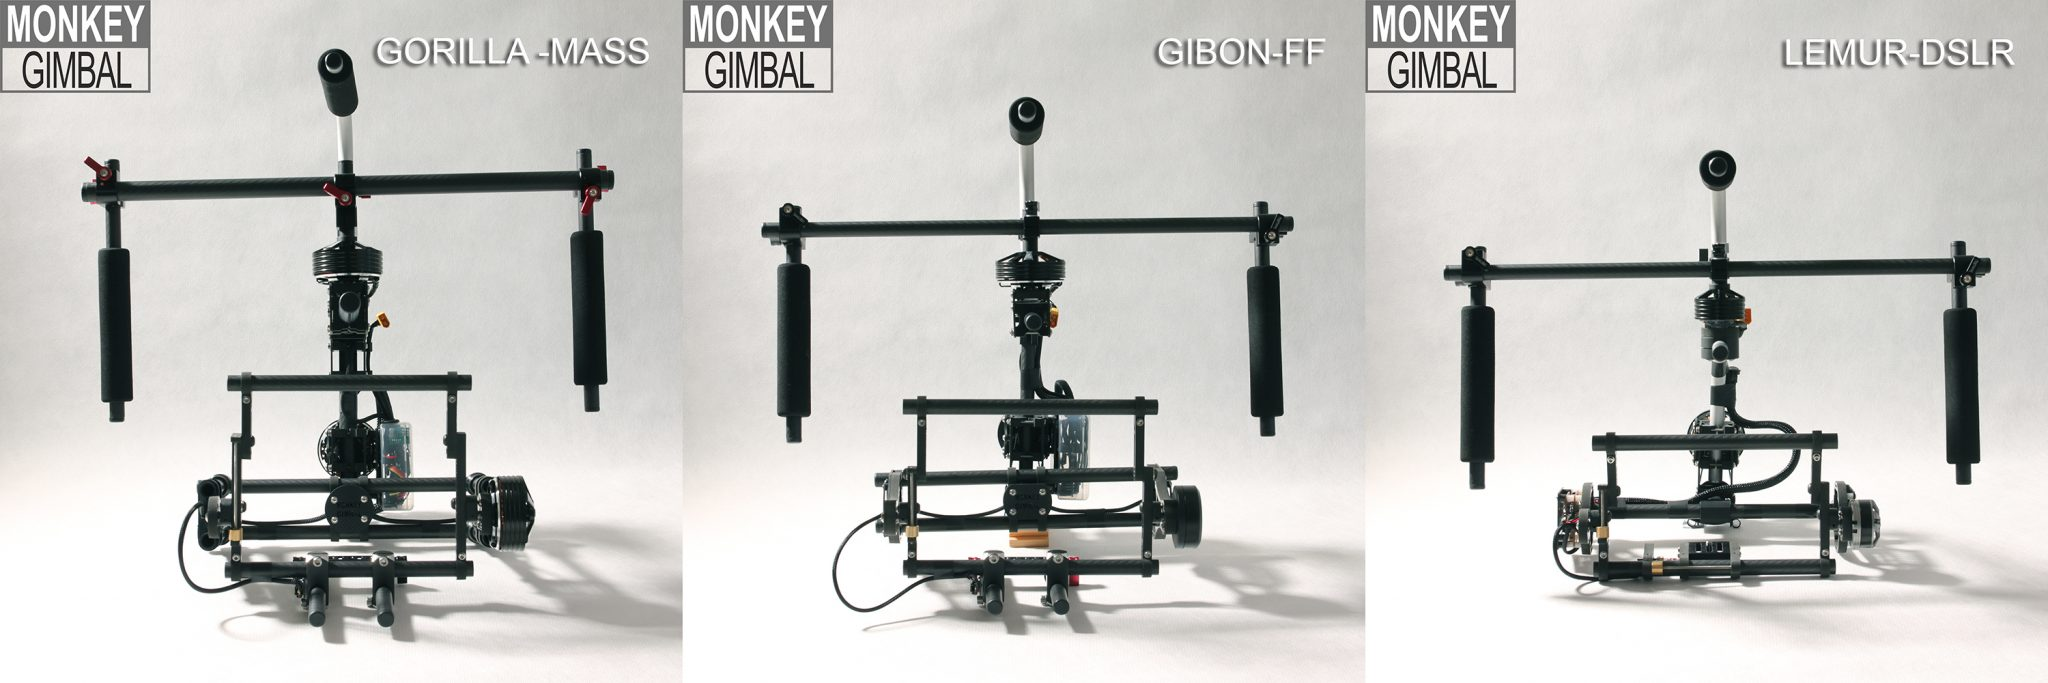 Monkey Gimbal Have a Massive 9 Versions Of Their 3-axis Handheld Camera Brushless Gimbal Stabilizer: